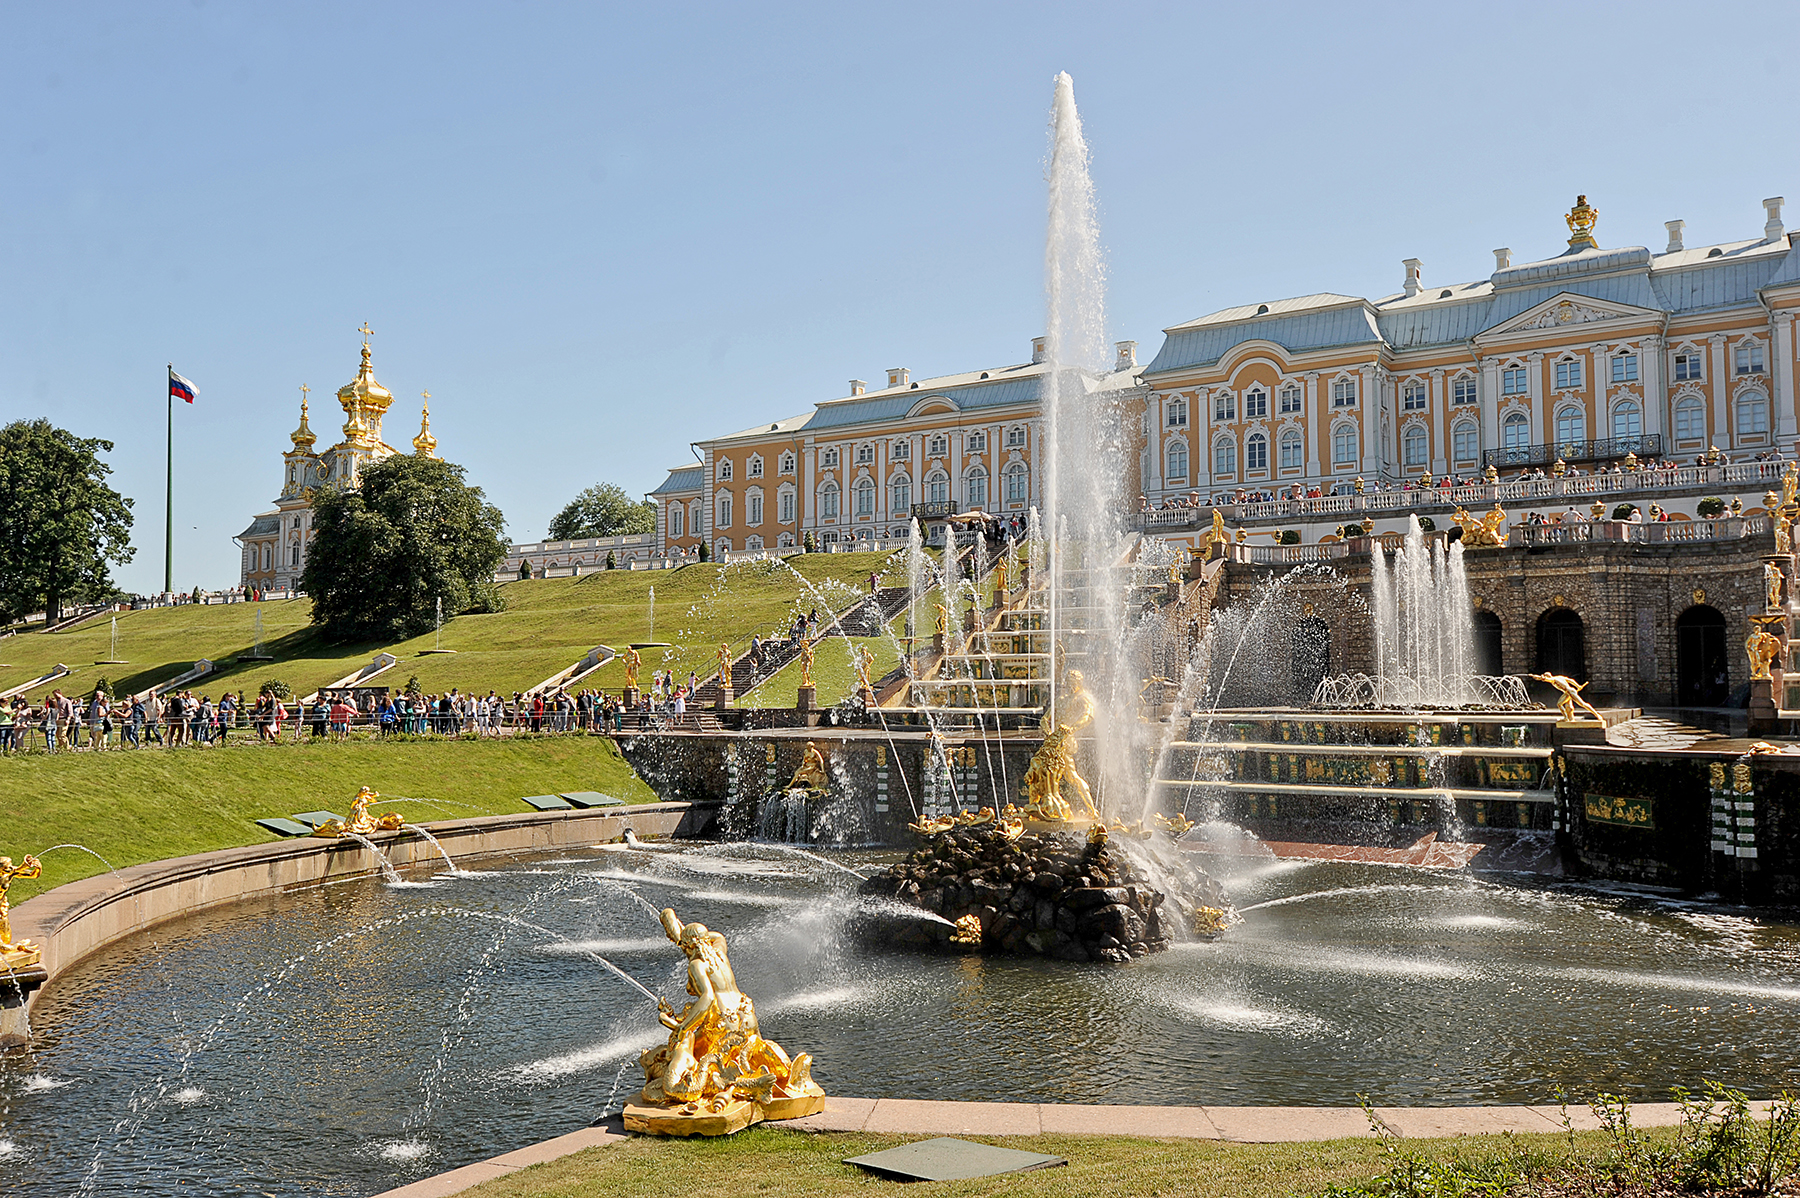 A Gold accented Fountain sits below a beautiful palace on a green lawn.